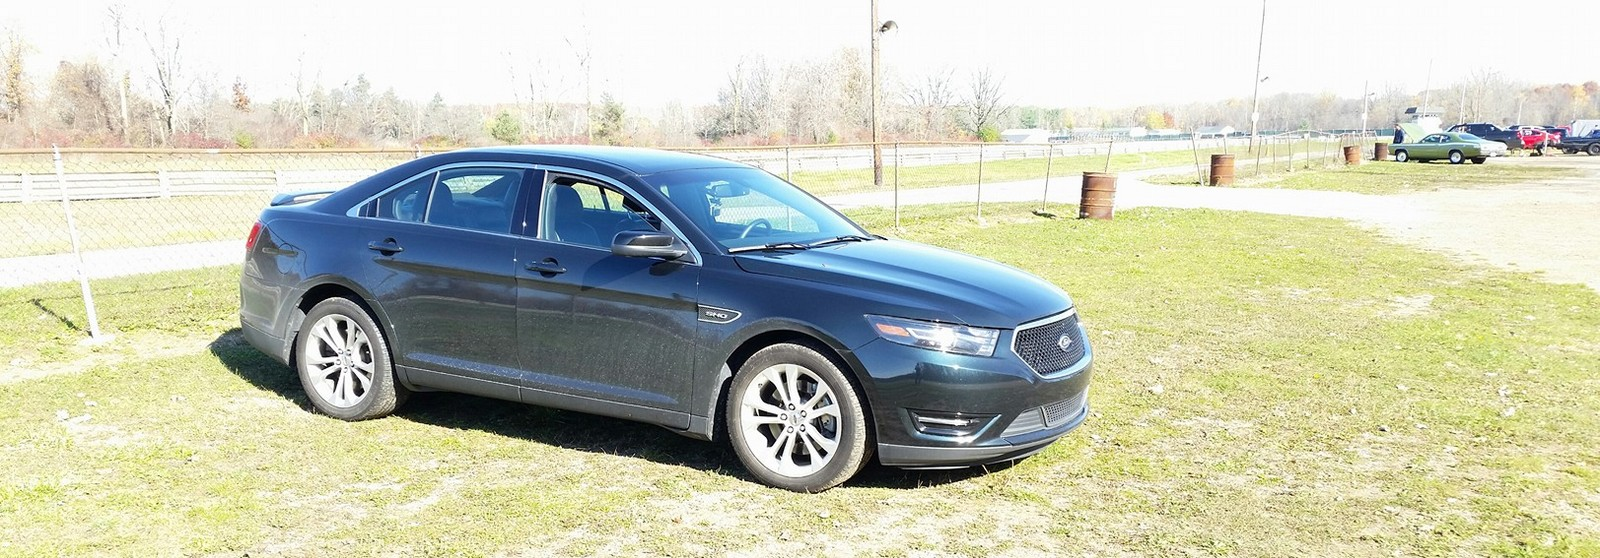 2014 Ford Taurus SHO 1/4 mile Drag Racing timeslip specs 0